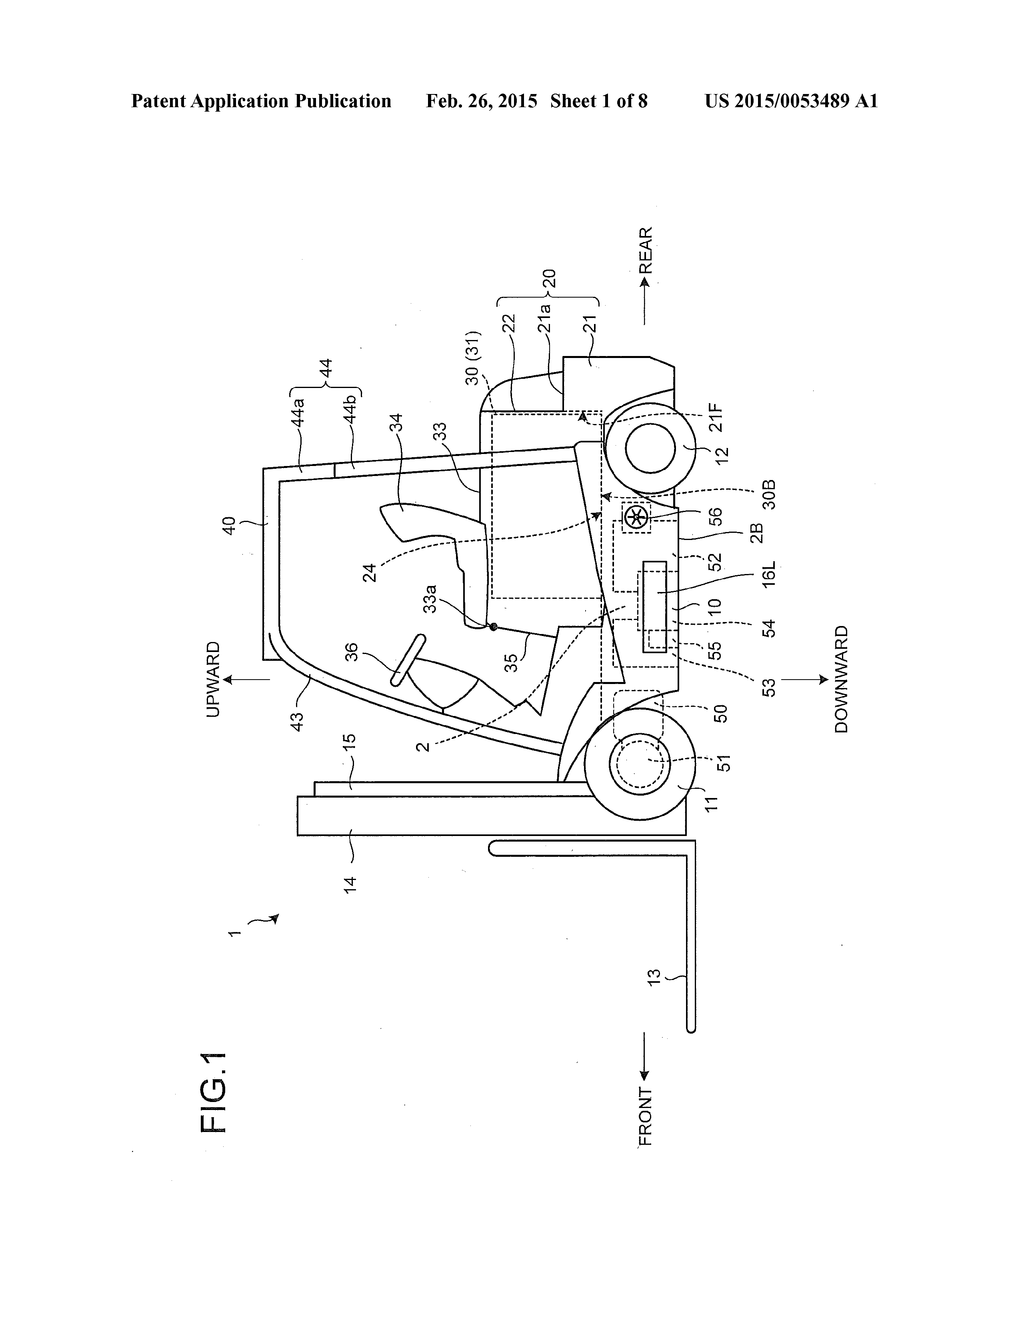 Battery Powered Work Machine And Forklift Diagram Schematic Image 02